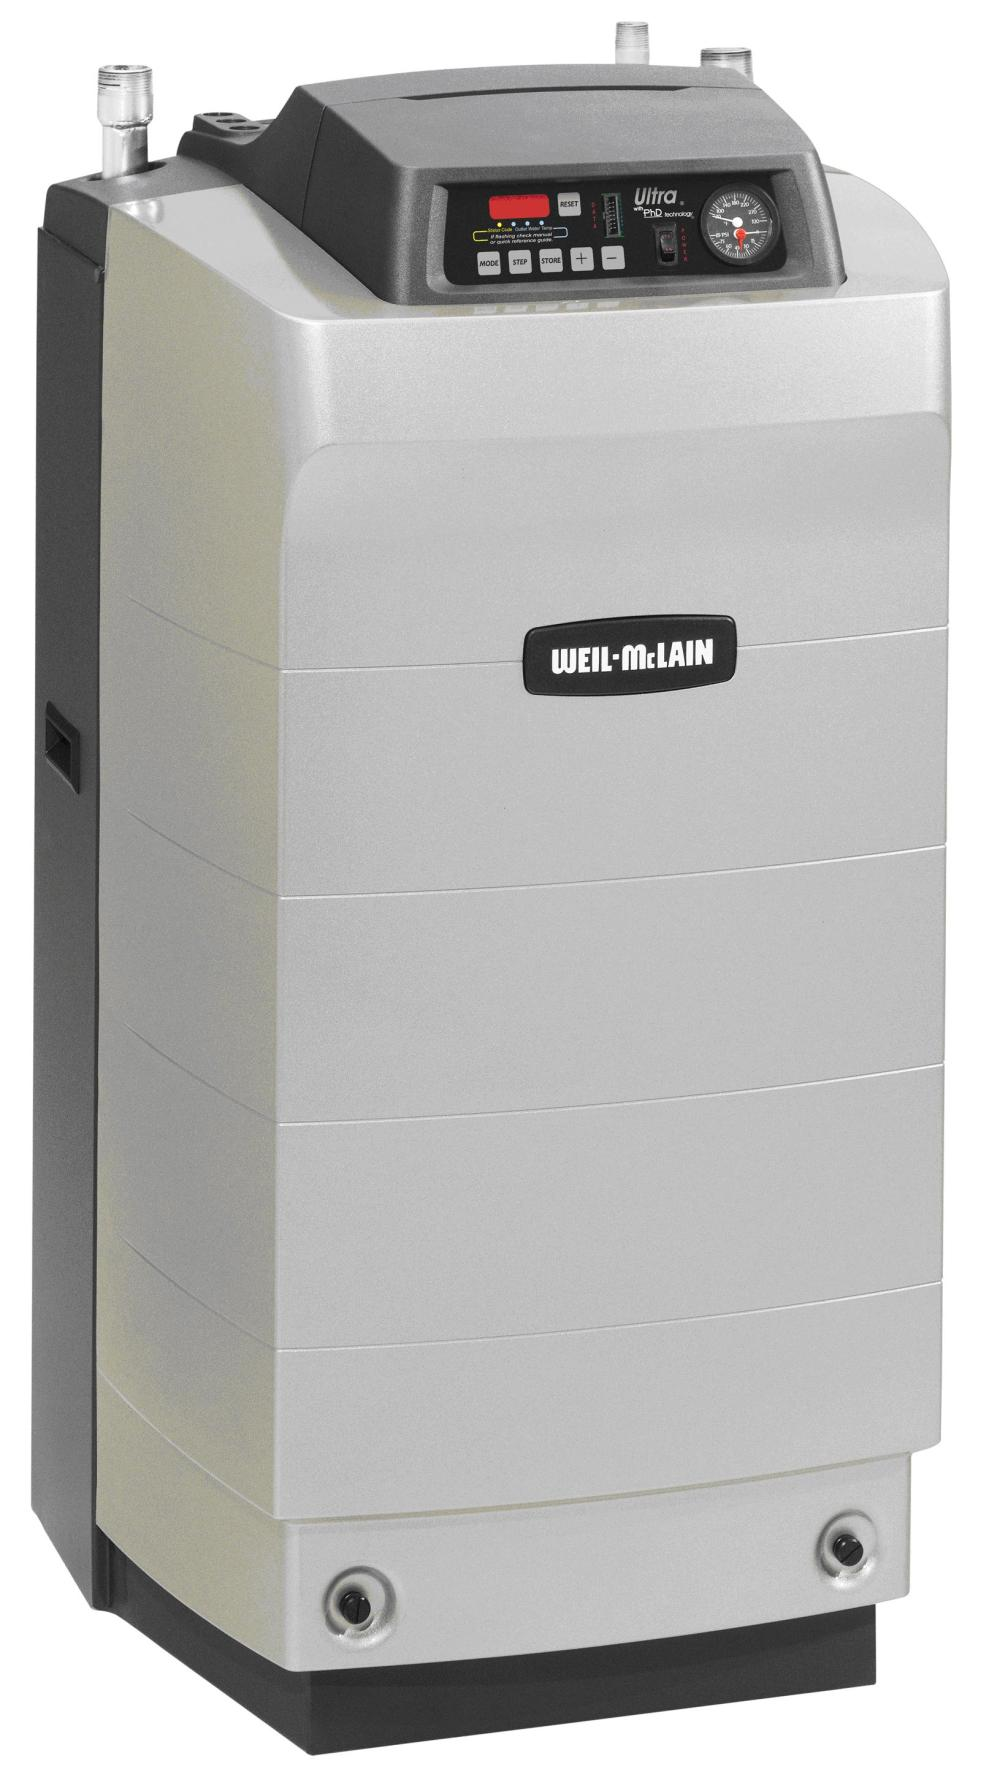 medium resolution of picture of recalled gas boiler